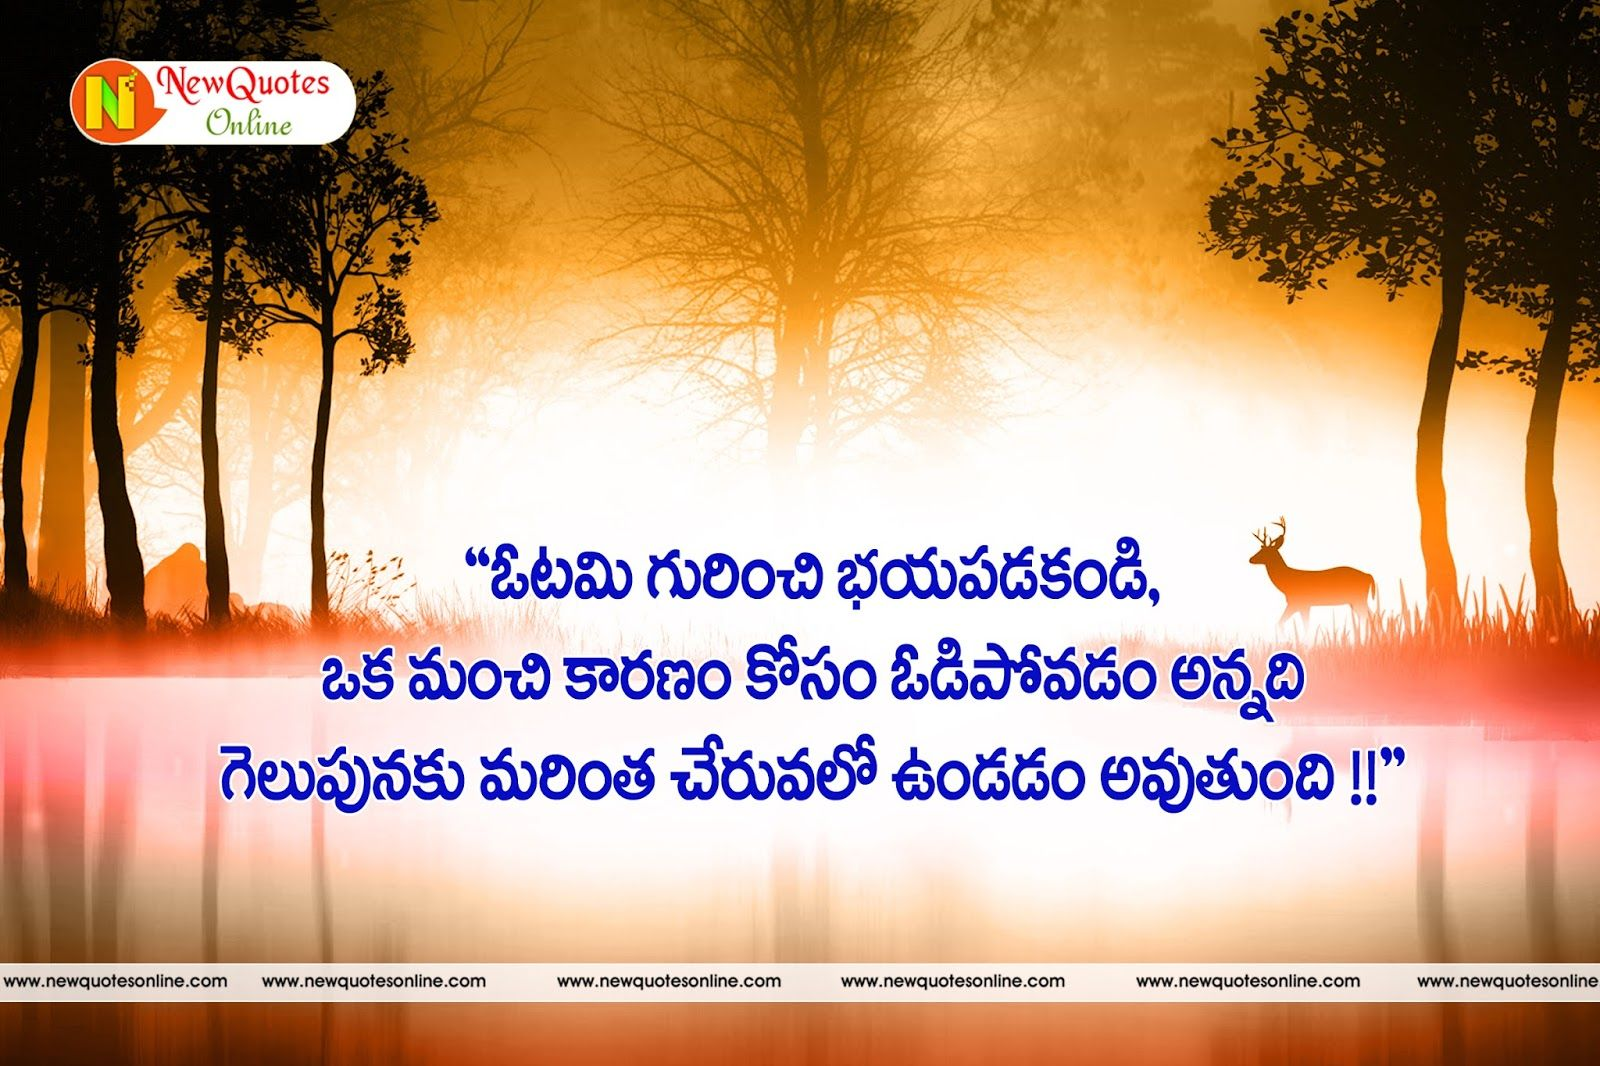 Best Pinterest Quotes Inspirational: Best 25+ Telugu Inspirational Quotes Ideas On Pinterest